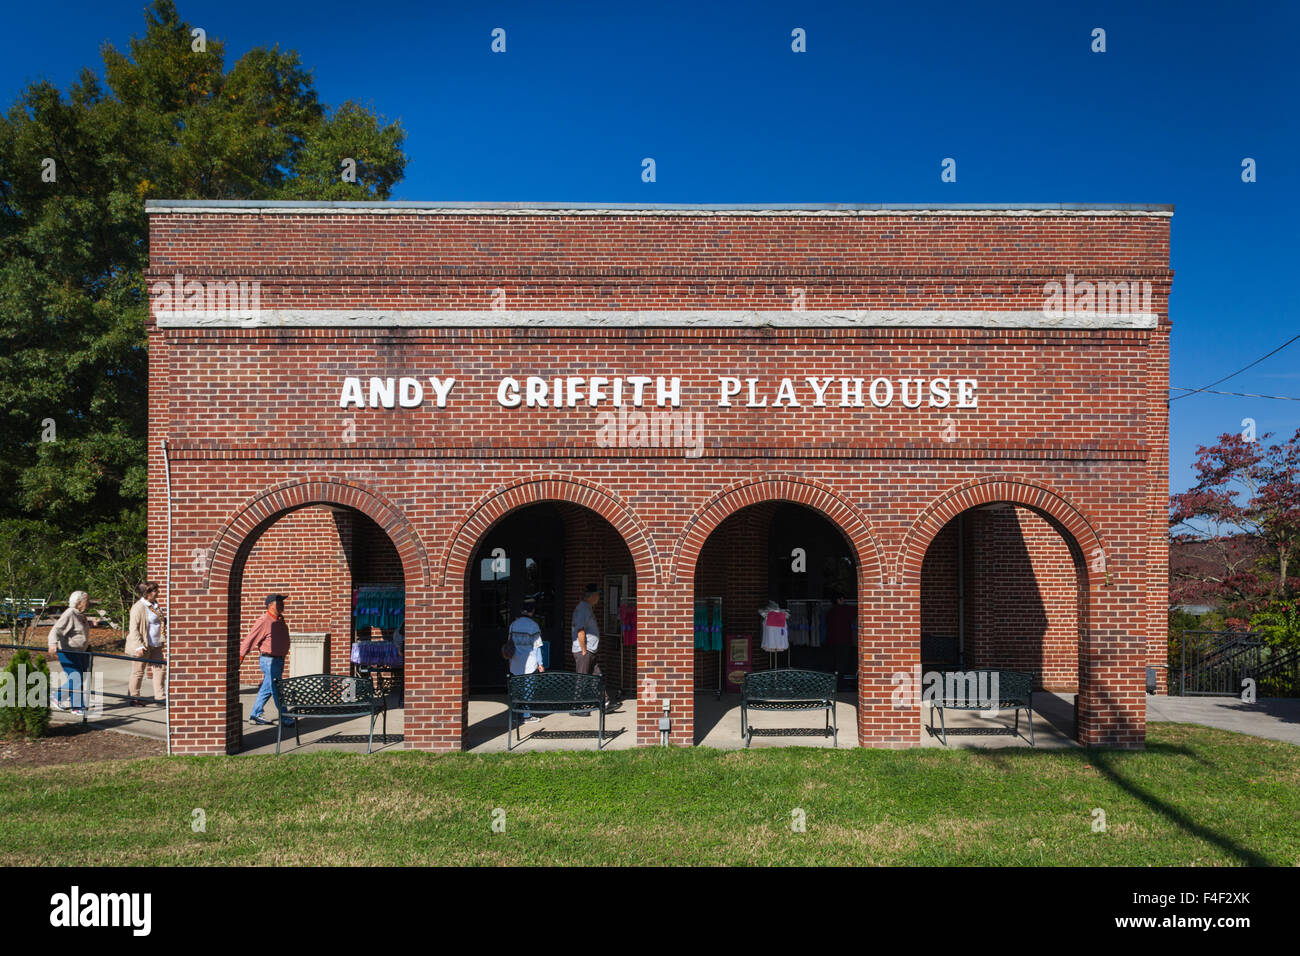 North Carolina, Mt. Airy, Andy Griffith Playhouse, dedicated to the star of the Andy of Mayberry TV show - Stock Image